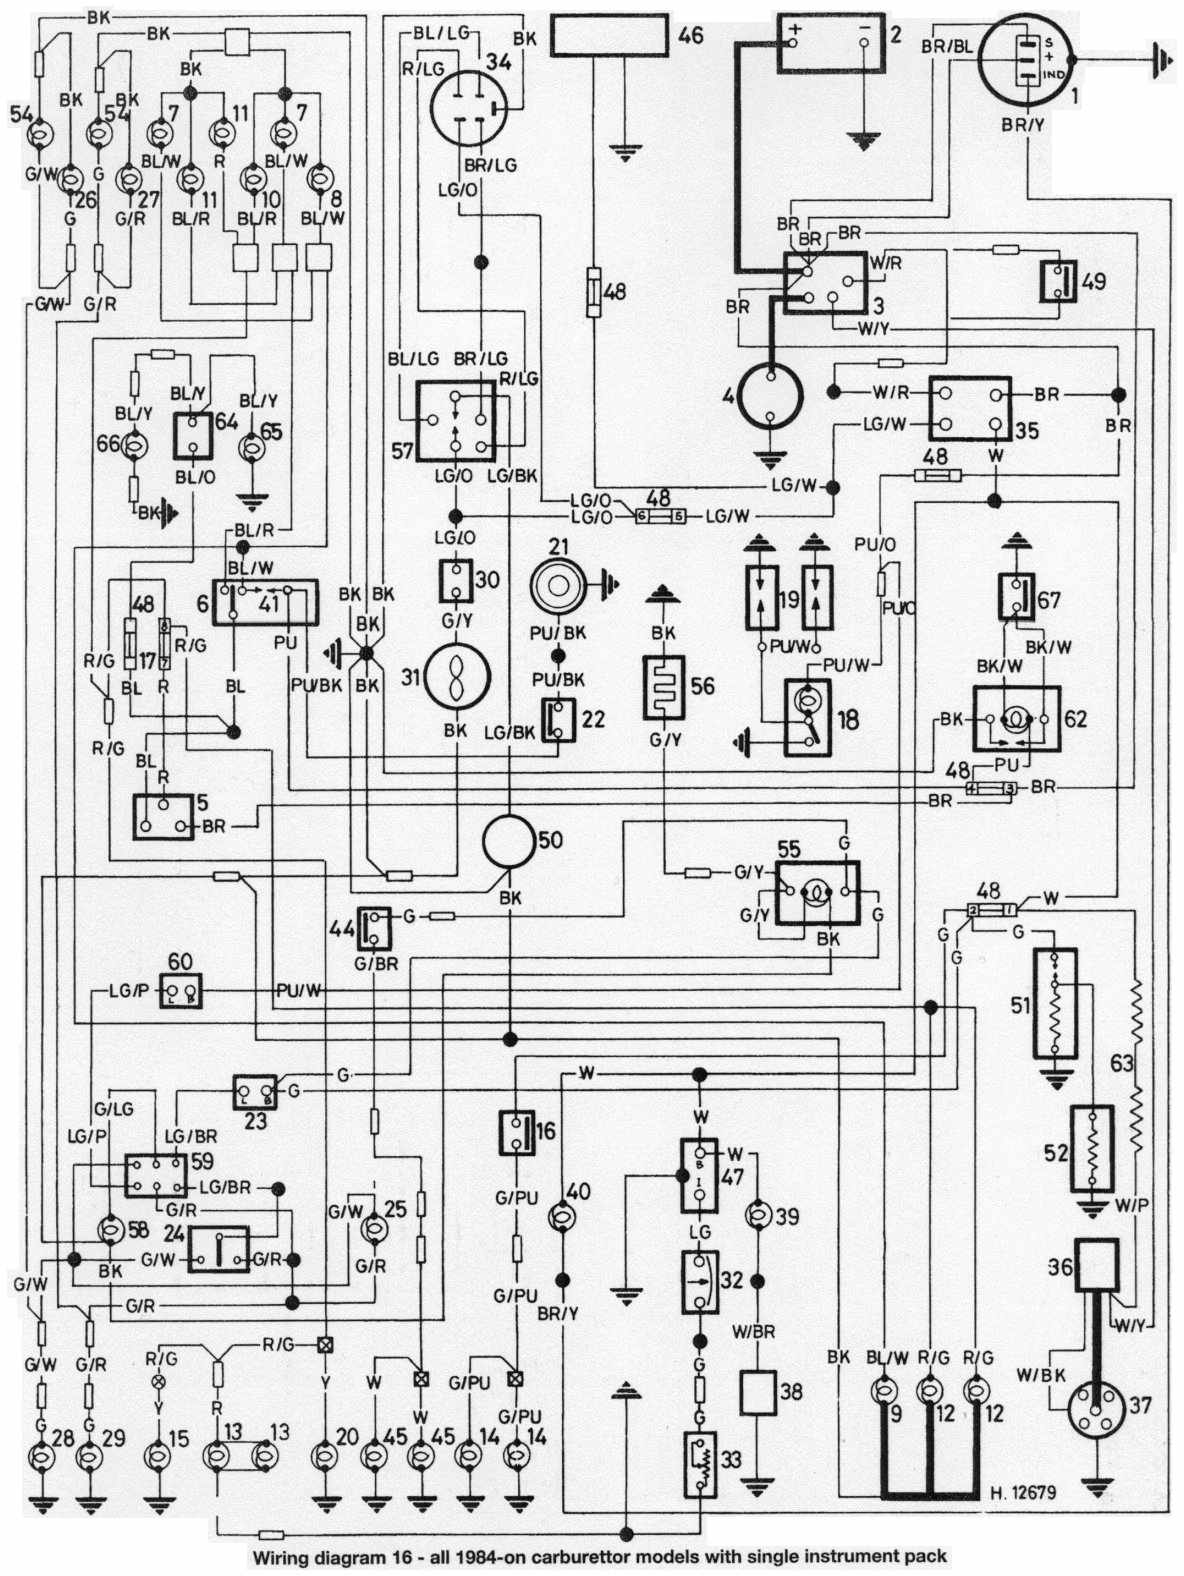 1985 Austin Mini Wiring Diagram